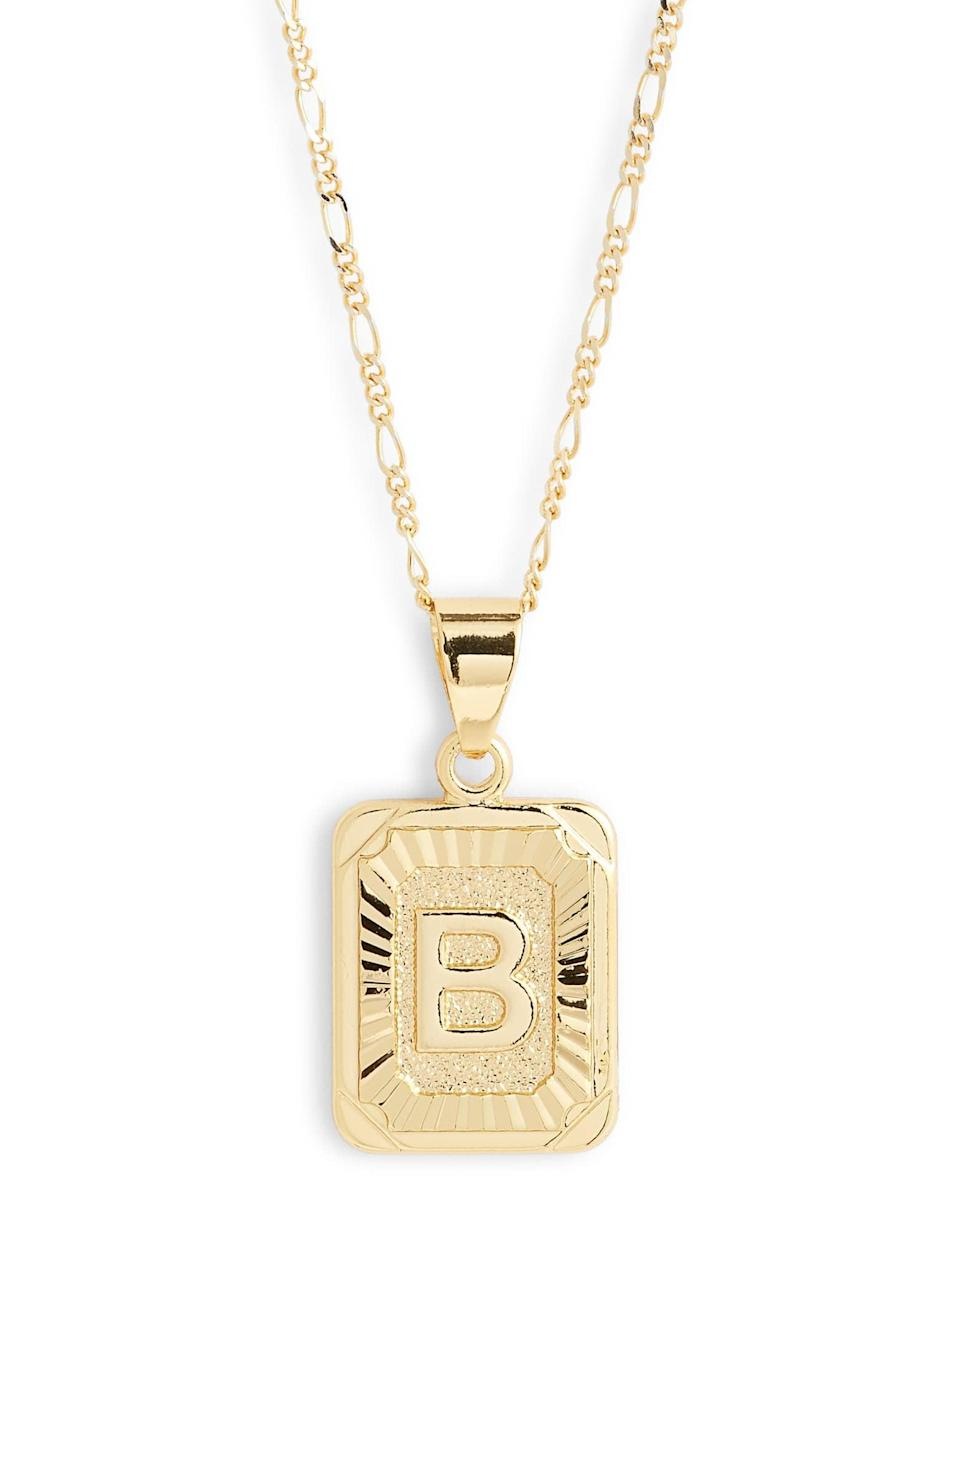 "<p>We love the design of this <a href=""https://www.popsugar.com/buy/Bracha-Initial-Pendant-Necklace-532947?p_name=Bracha%20Initial%20Pendant%20Necklace&retailer=shop.nordstrom.com&pid=532947&price=52&evar1=fab%3Aus&evar9=36291197&evar98=https%3A%2F%2Fwww.popsugar.com%2Ffashion%2Fphoto-gallery%2F36291197%2Fimage%2F47027894%2FBracha-Initial-Pendant-Necklace&list1=shopping%2Choliday%2Cwinter%2Cgift%20guide%2Cwinter%20fashion%2Choliday%20fashion%2Cfashion%20gifts&prop13=api&pdata=1"" rel=""nofollow noopener"" class=""link rapid-noclick-resp"" target=""_blank"" data-ylk=""slk:Bracha Initial Pendant Necklace"">Bracha Initial Pendant Necklace</a> ($52).</p>"